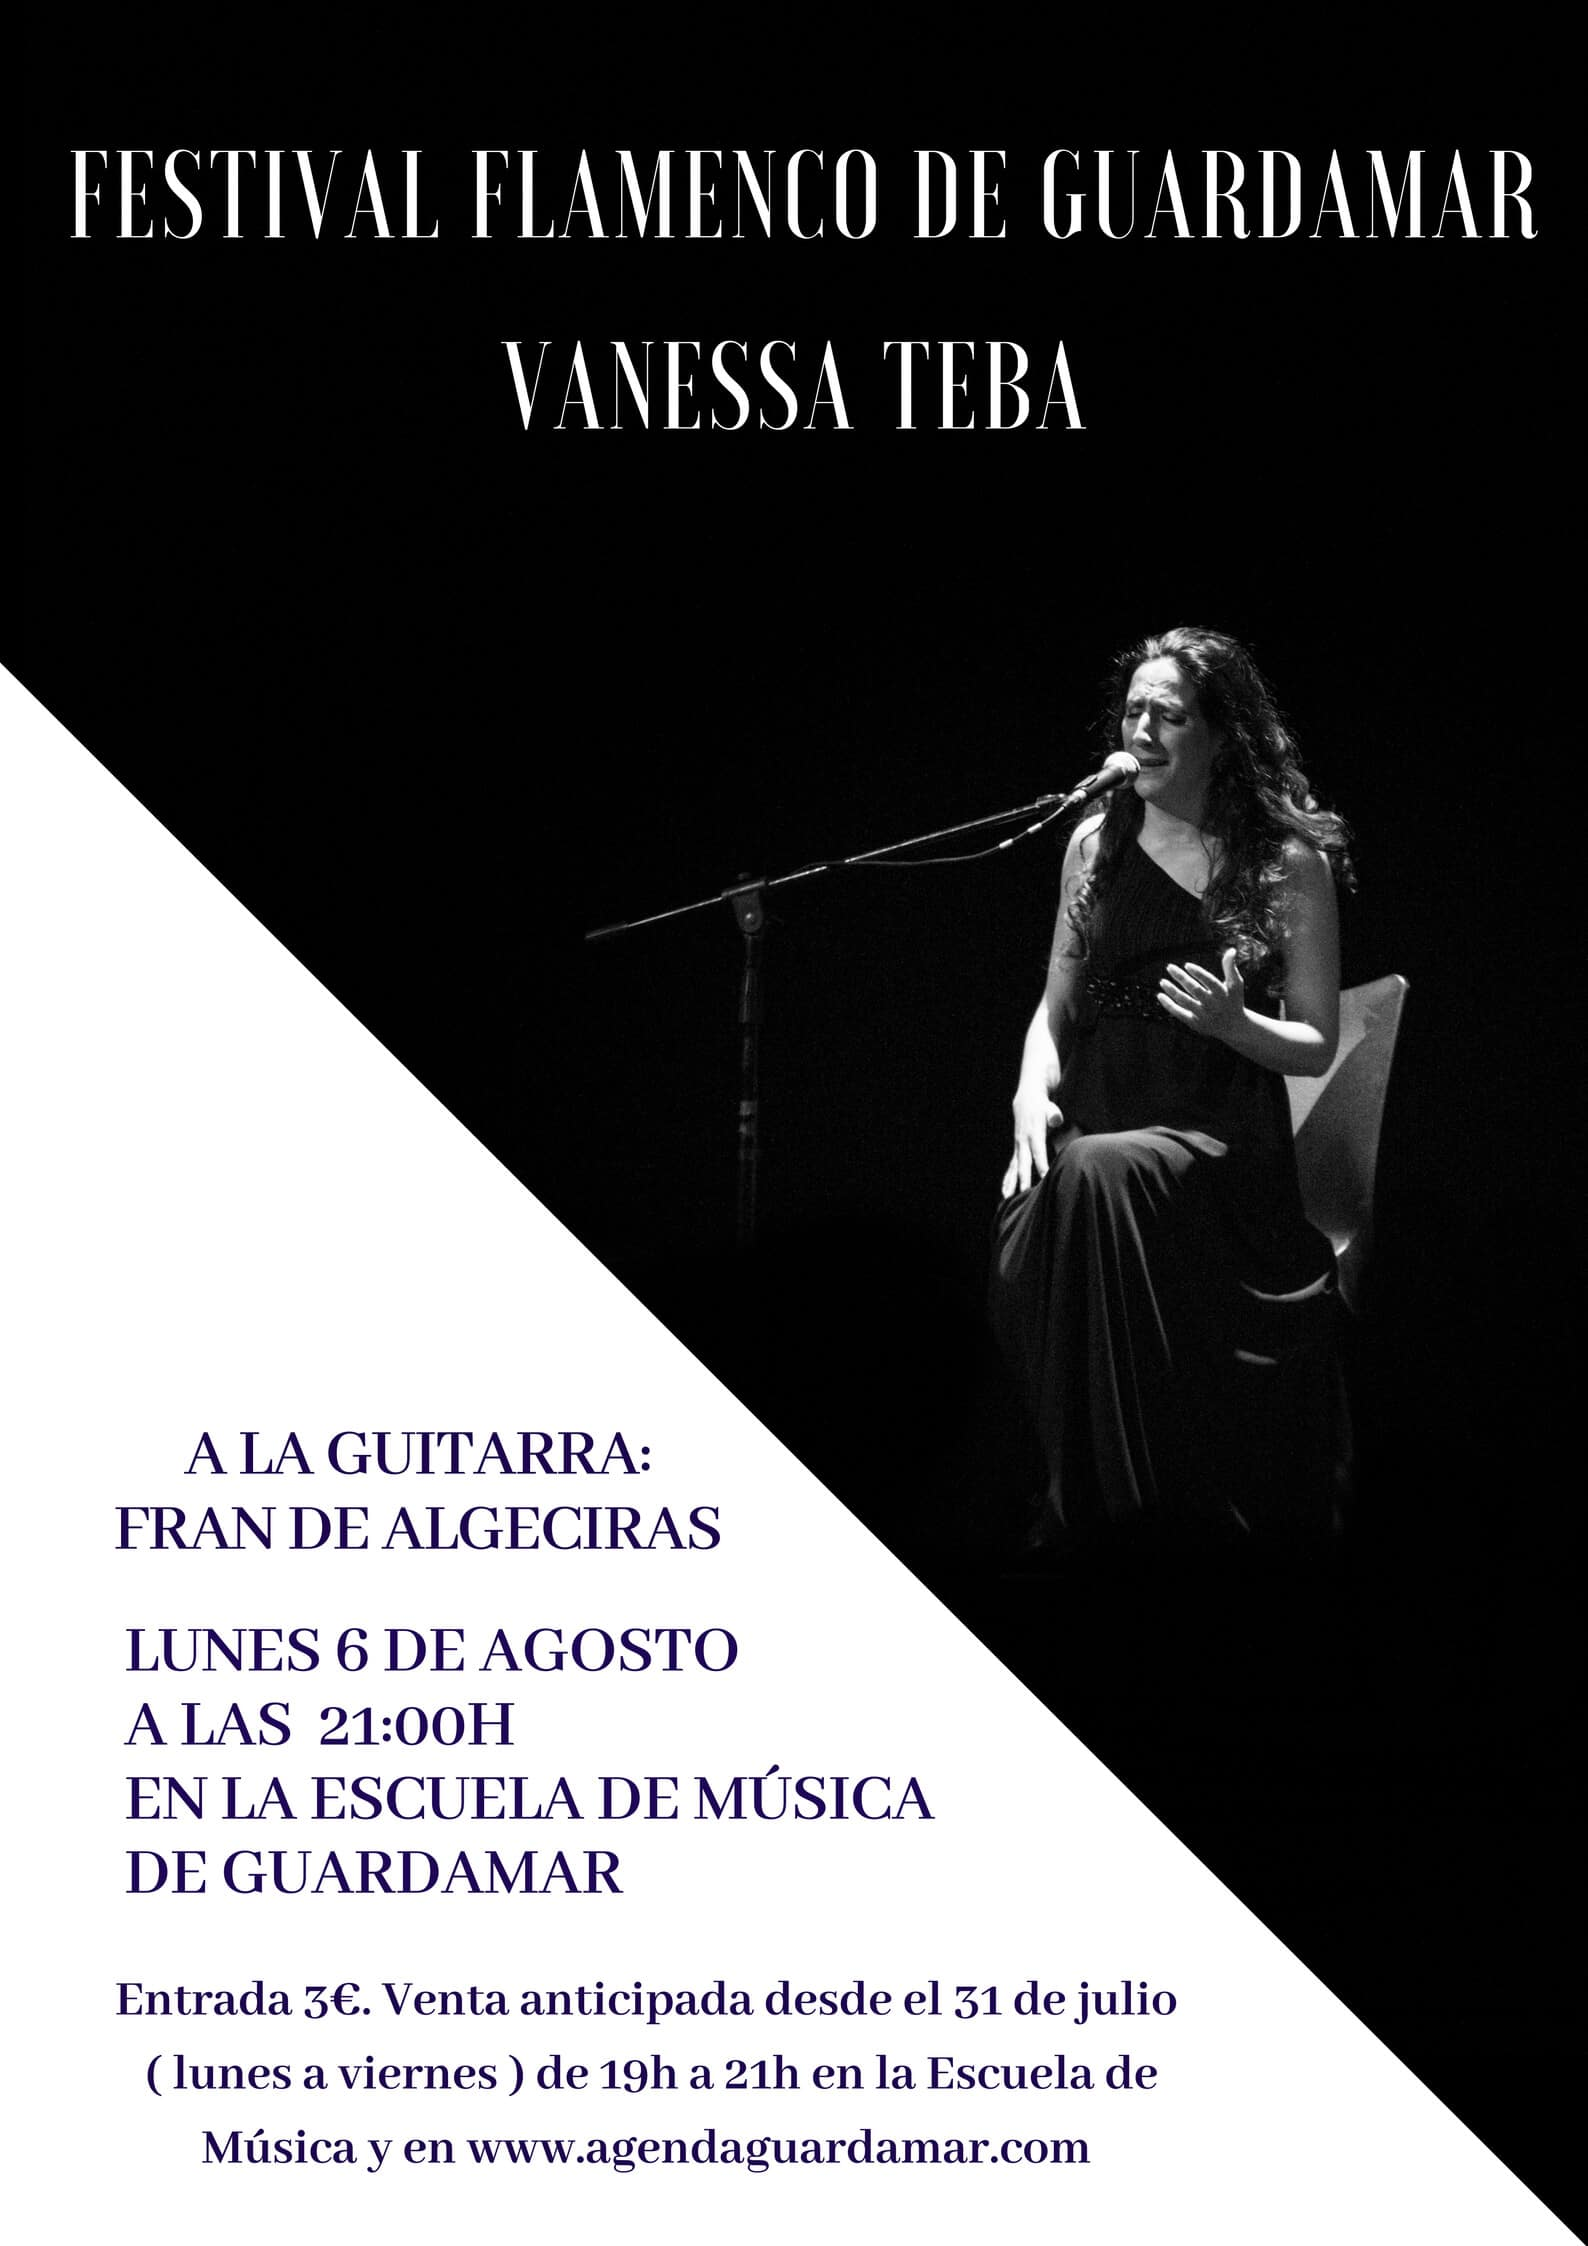 Recital Flamenco Guardamar Vanessa Teba